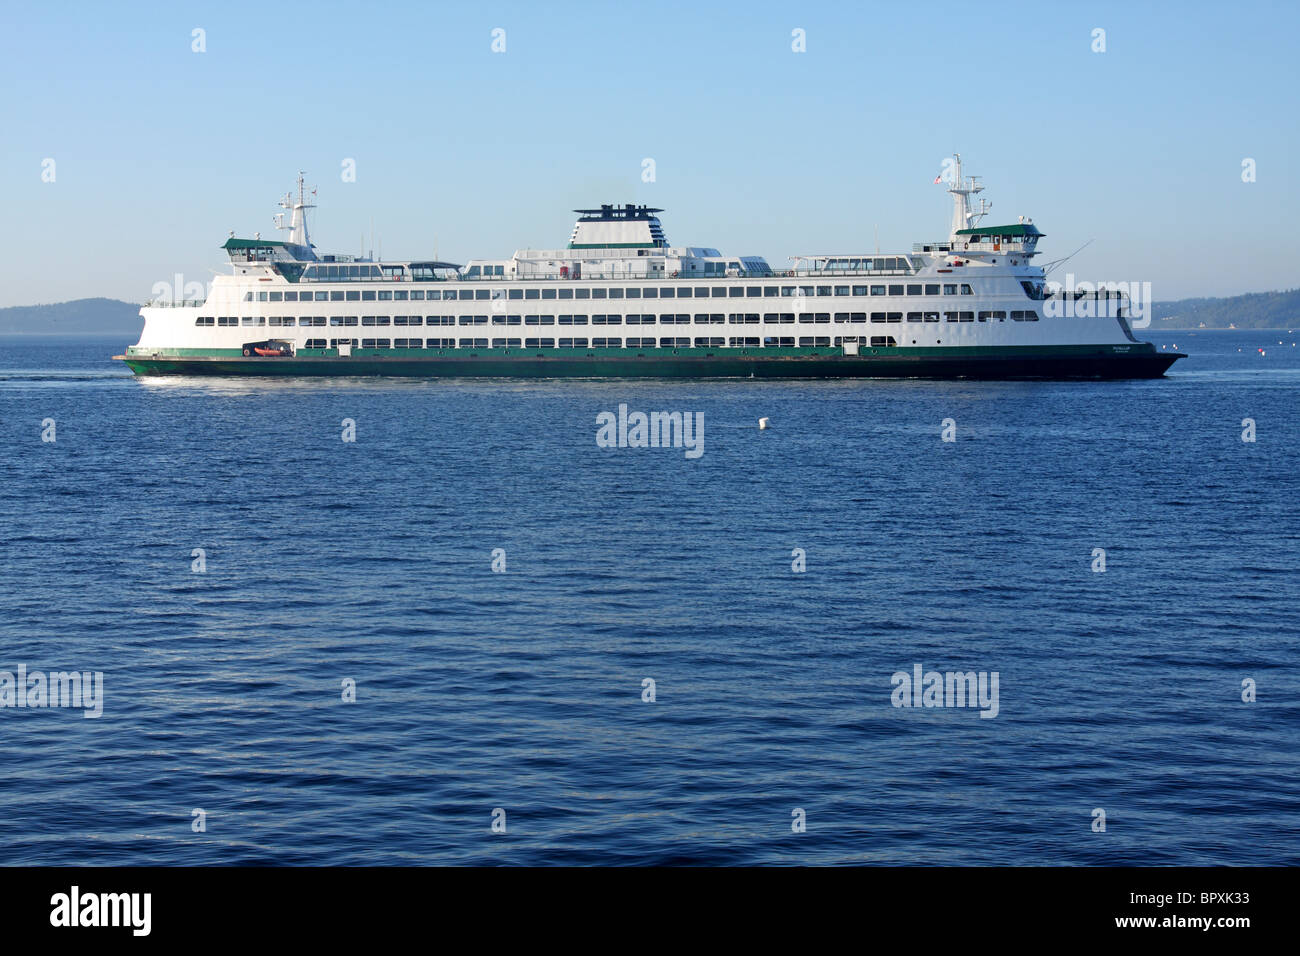 The Washington State Ferry Puyallup approaches the terminal at Edmonds, Washington. Stock Photo